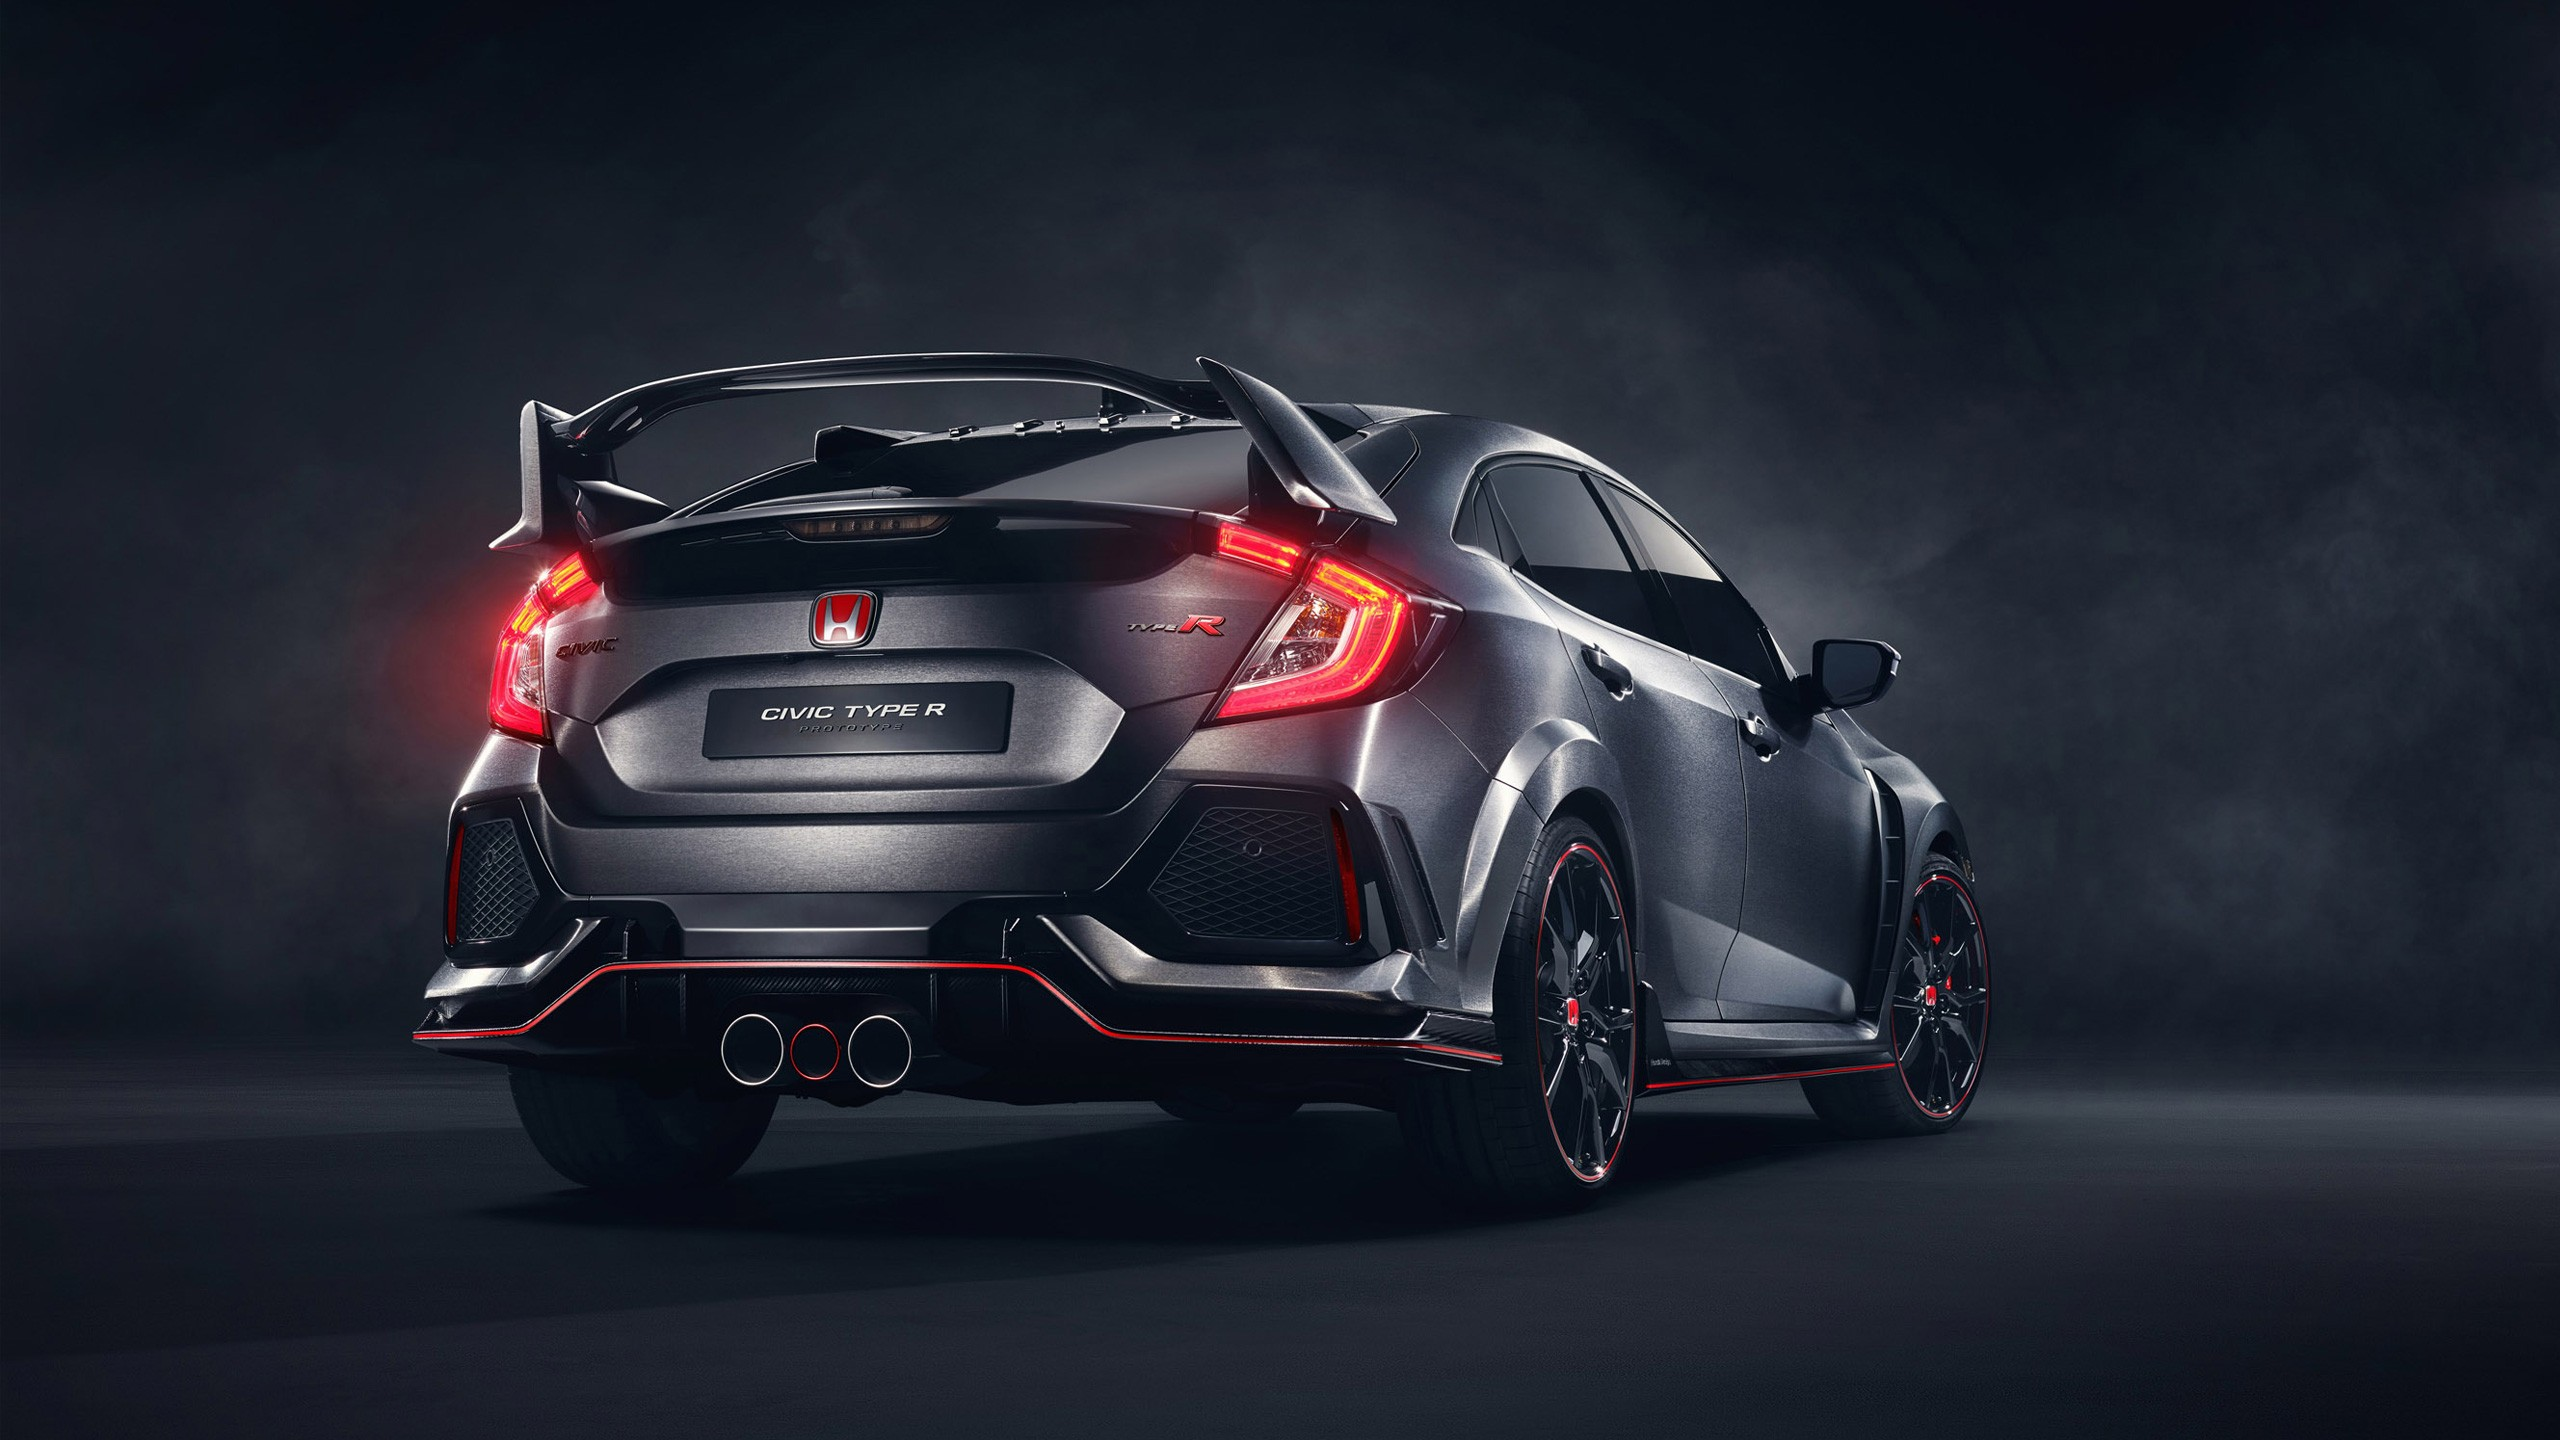 2017 Honda Civic Type R 3 Wallpaper